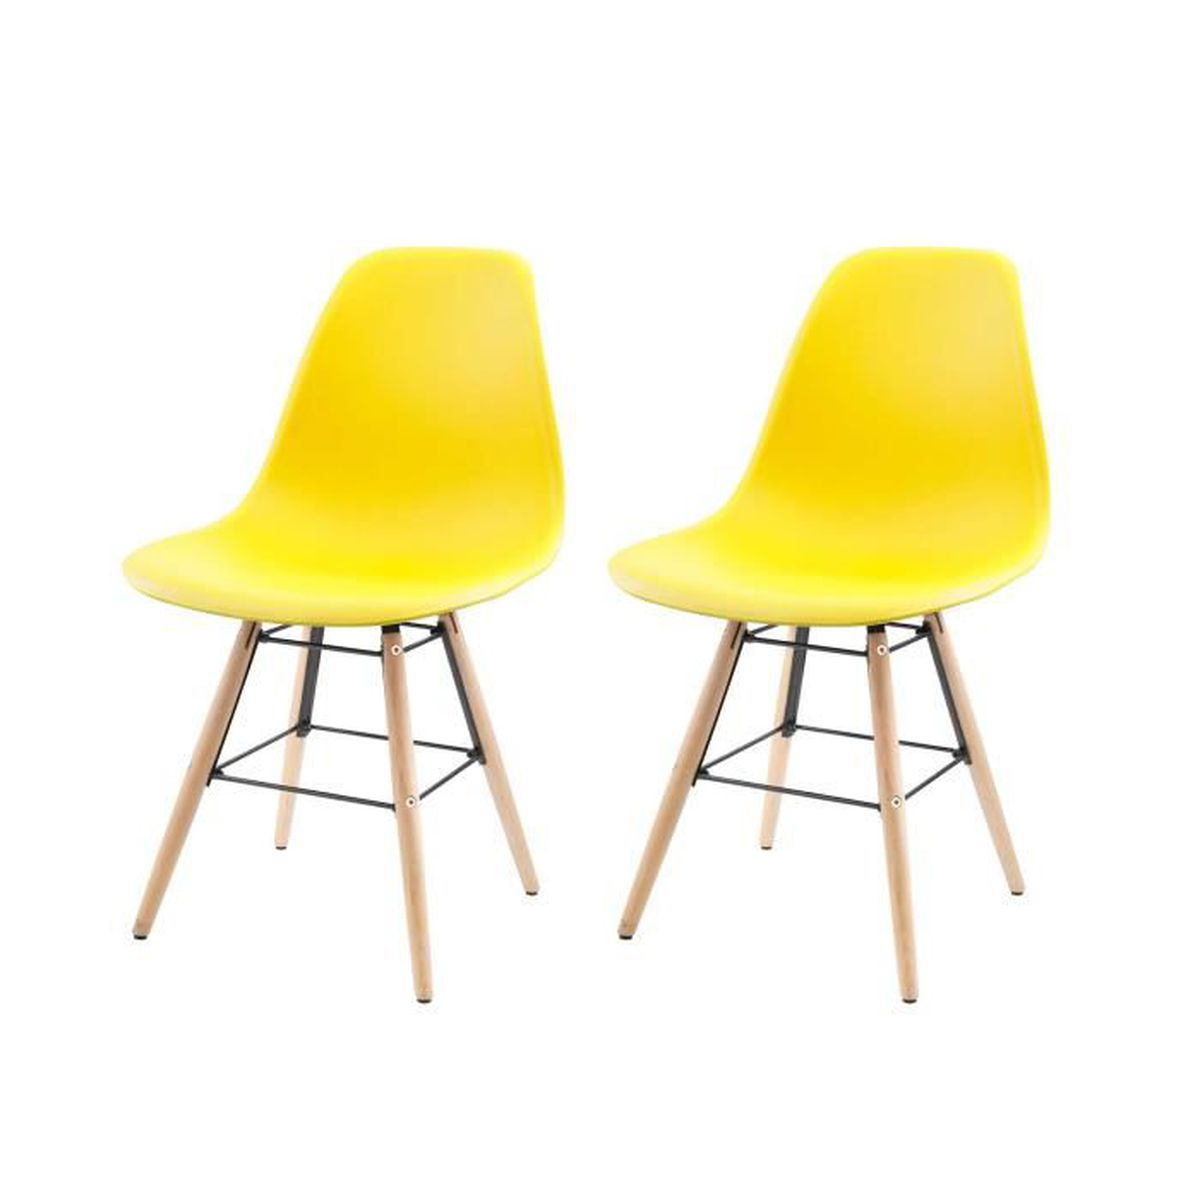 chaise lot de 2 chaises scandinaves gasoline avec pitrem - Chaise Jaune Scandinave